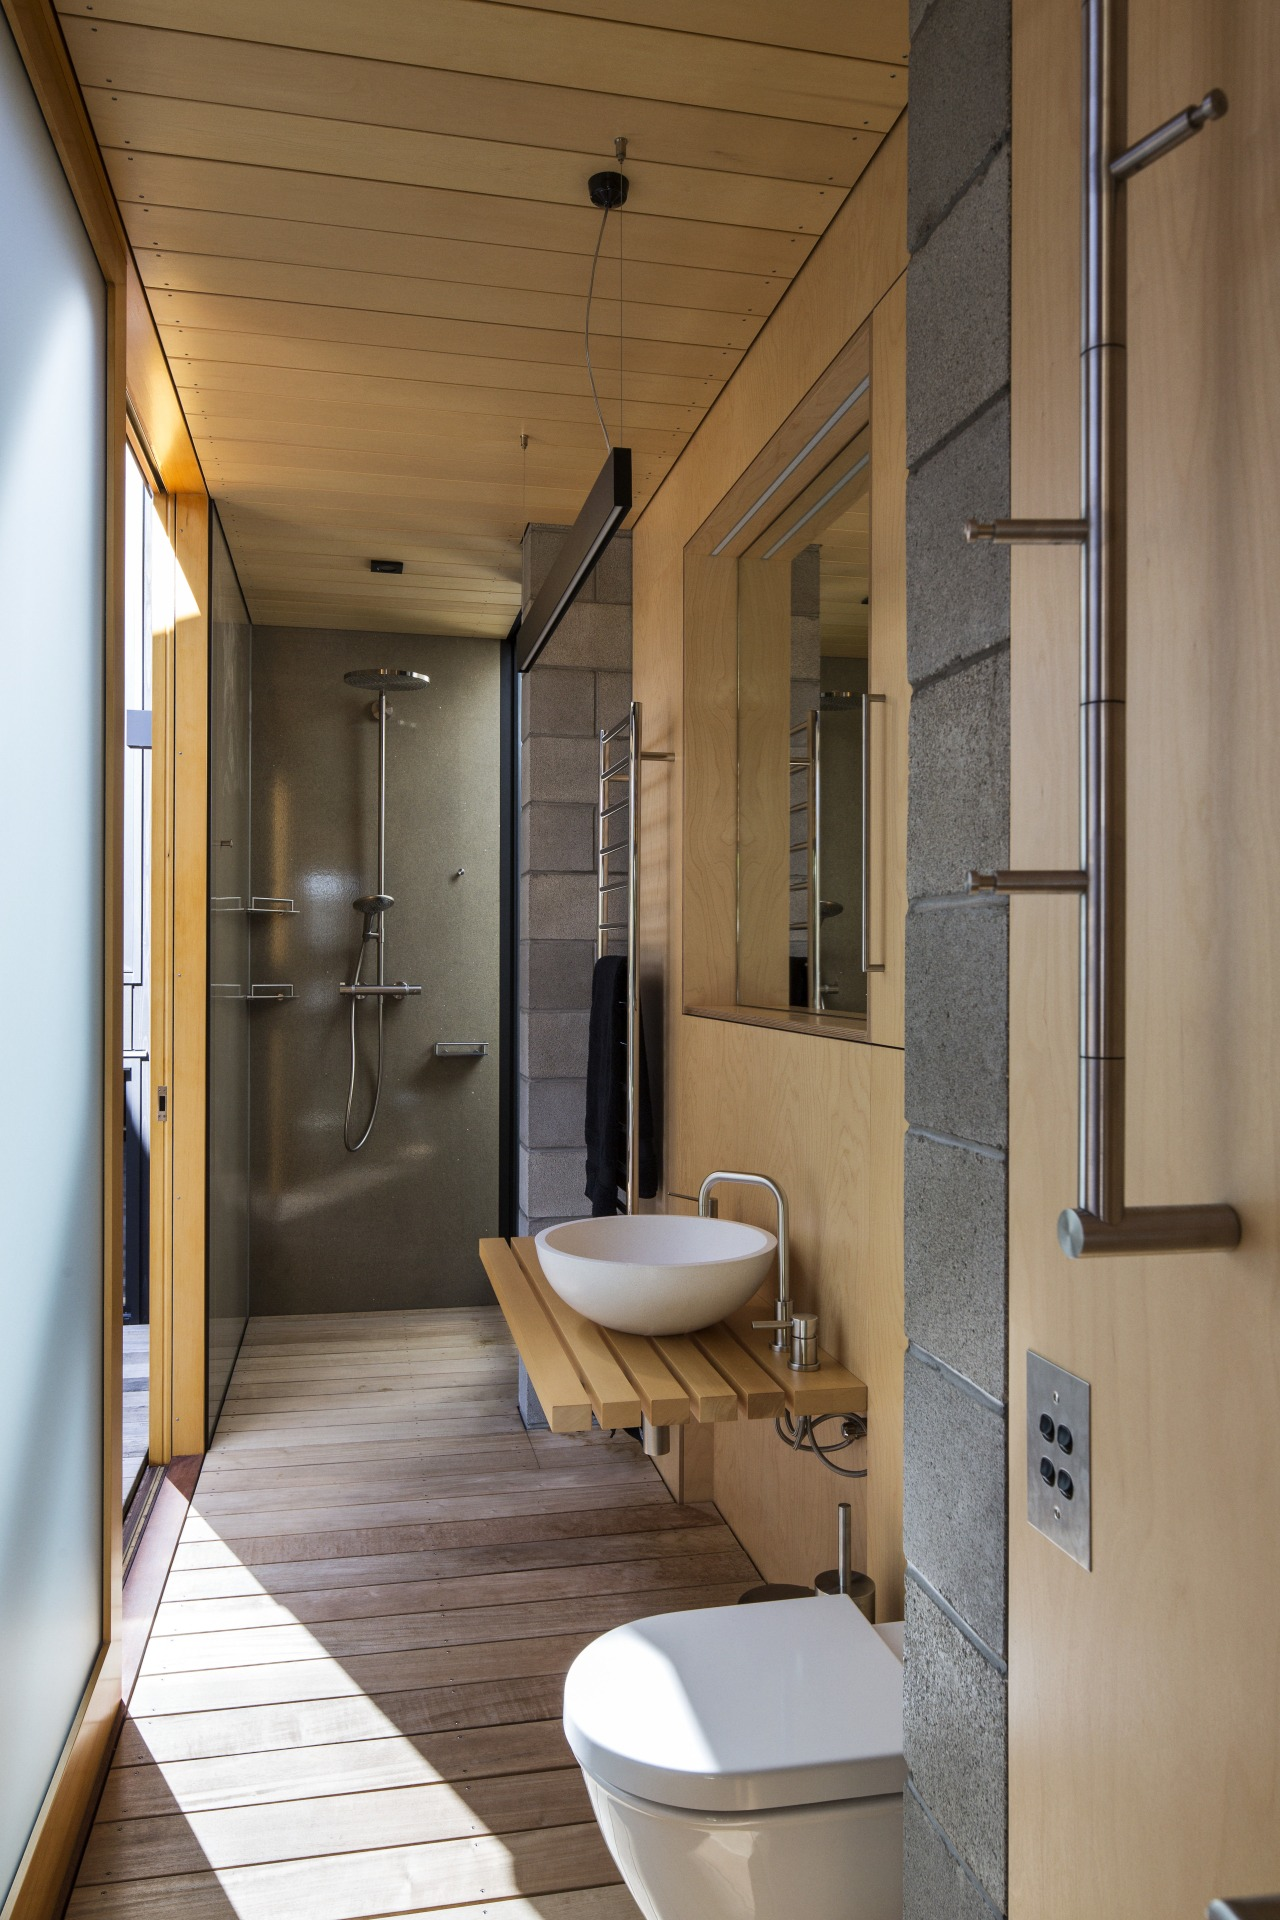 This family bathroom opens to a courtyard, and architecture, bathroom, house, interior design, real estate, room, brown, gray